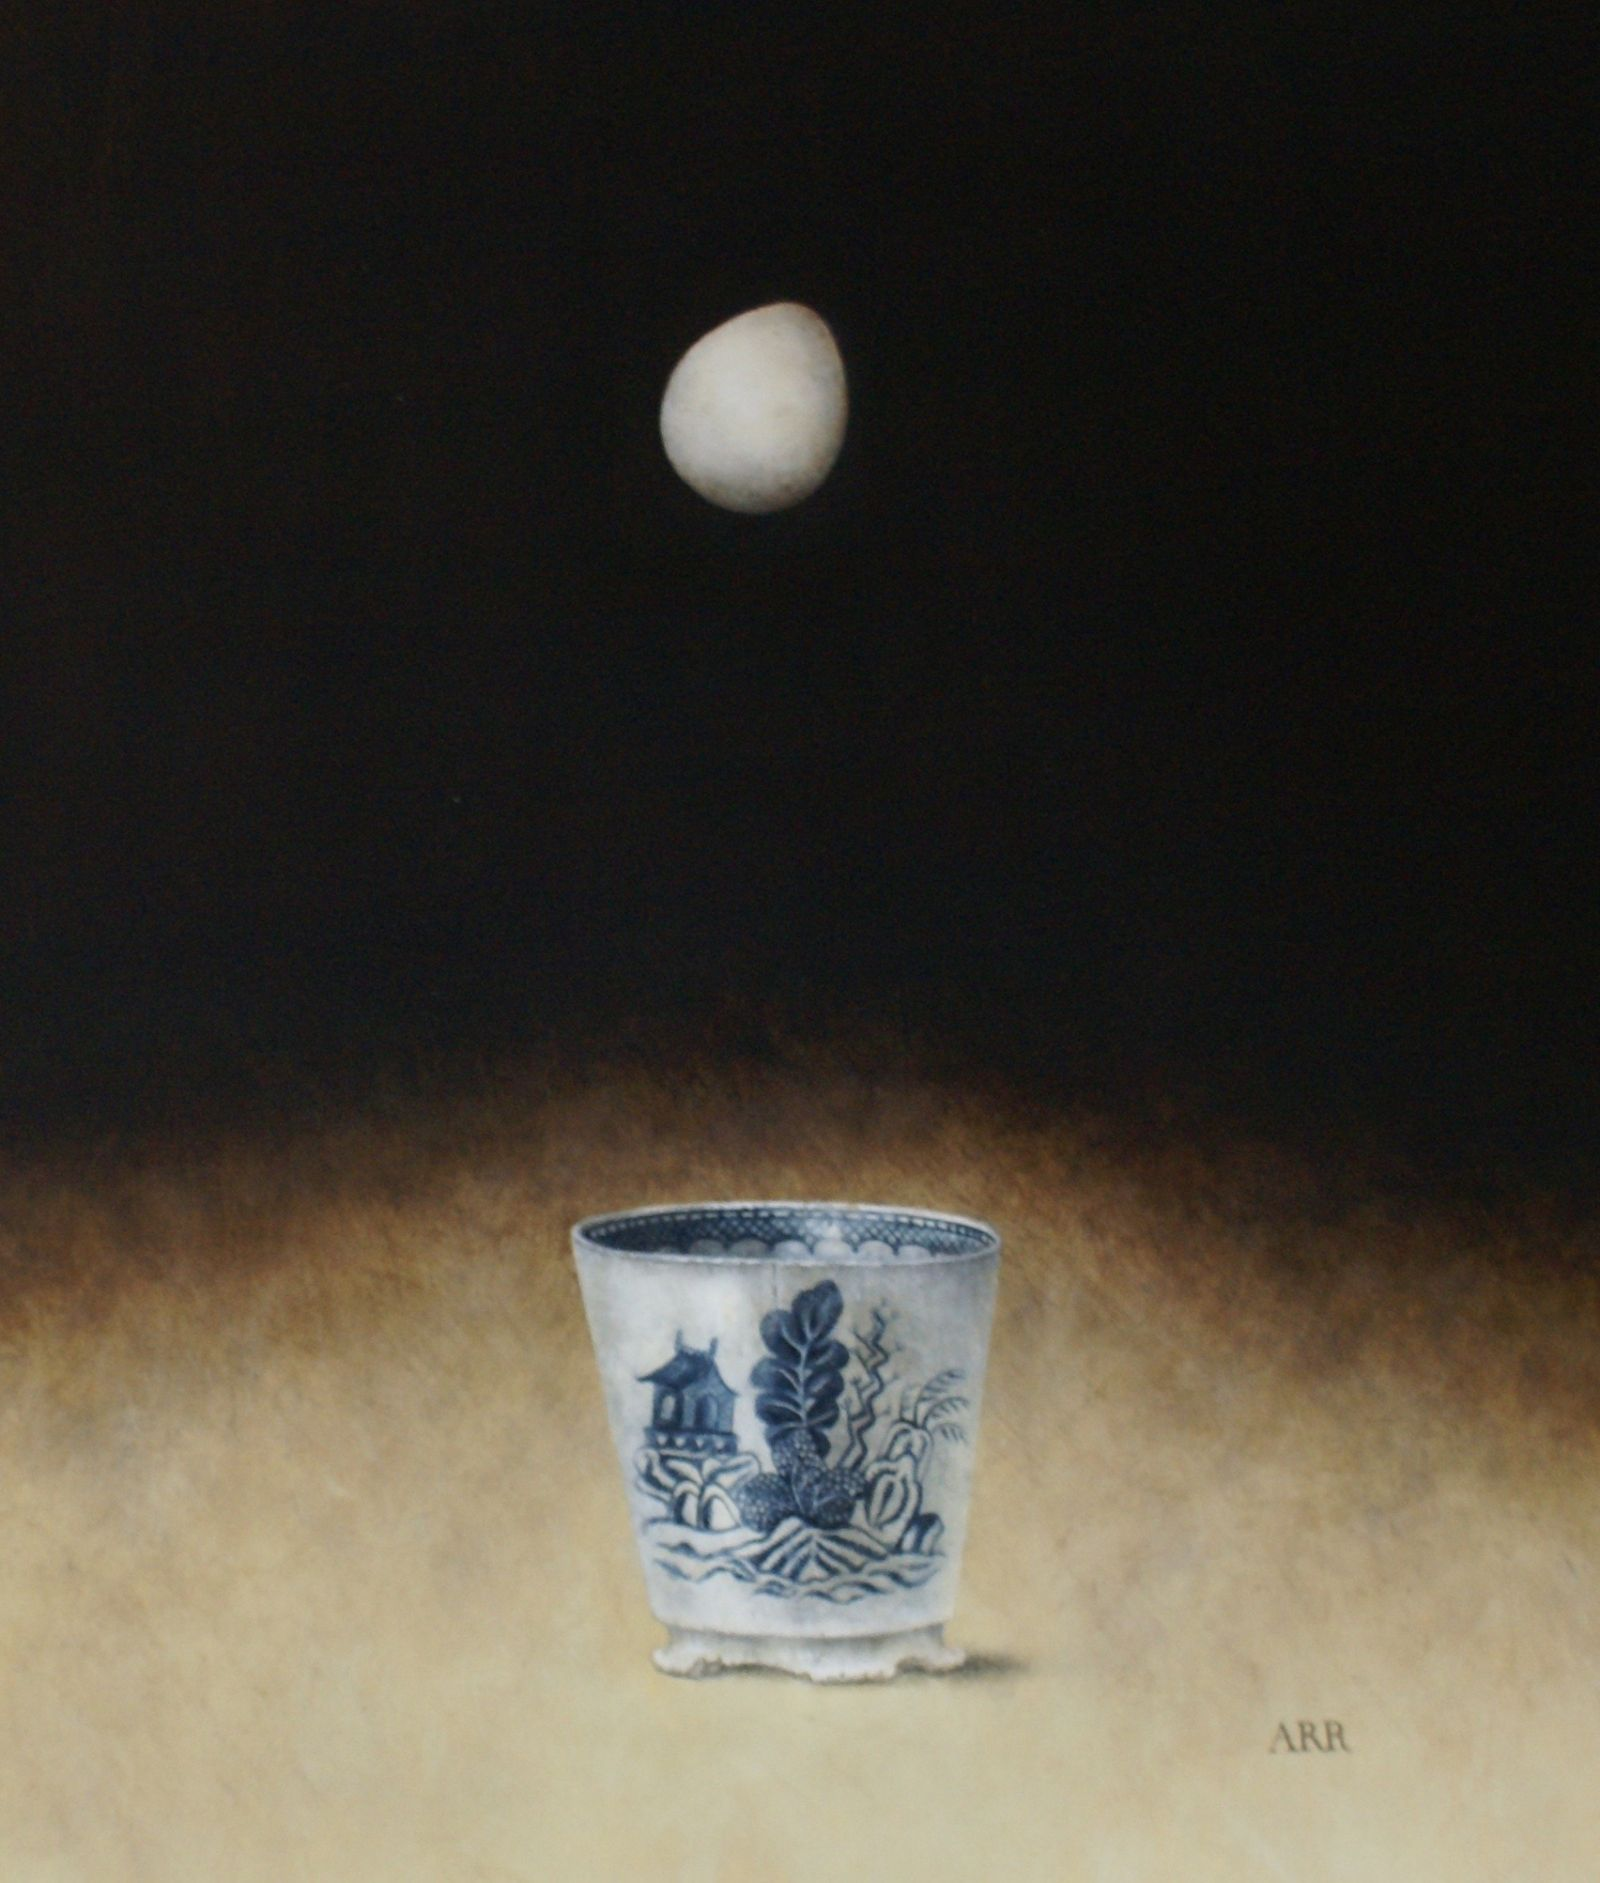 Alison Rankin - Chipped Blue Jar with Falling Egg